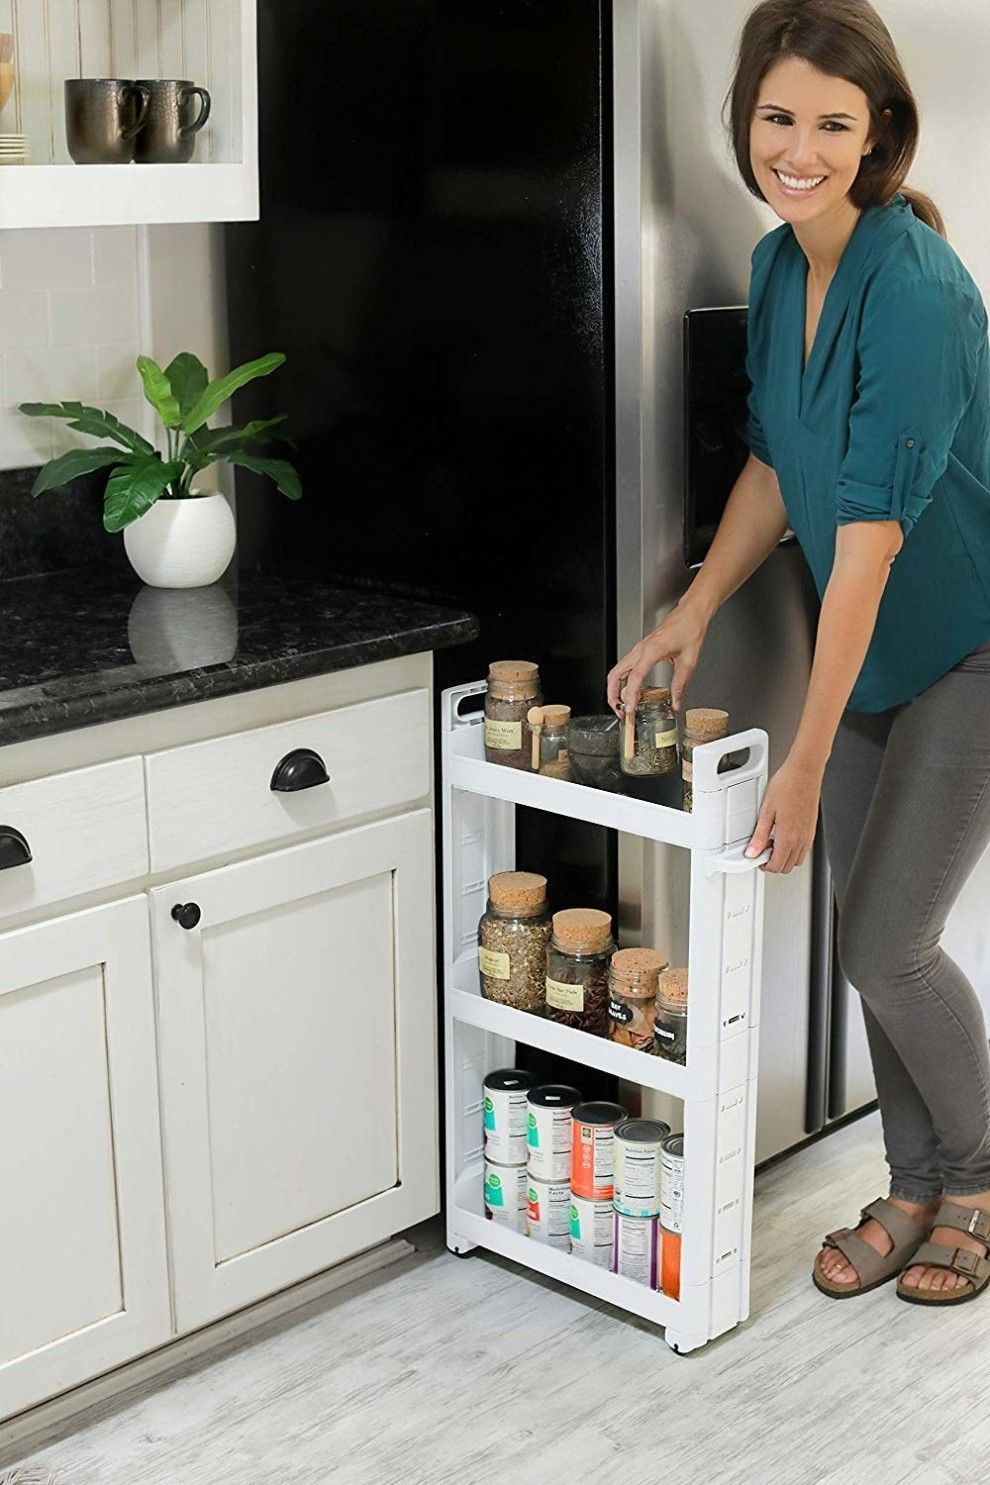 26 surprising uses for the small spaces in your home with images kitchen pantry cabinets on kitchen cabinets pantry id=64317